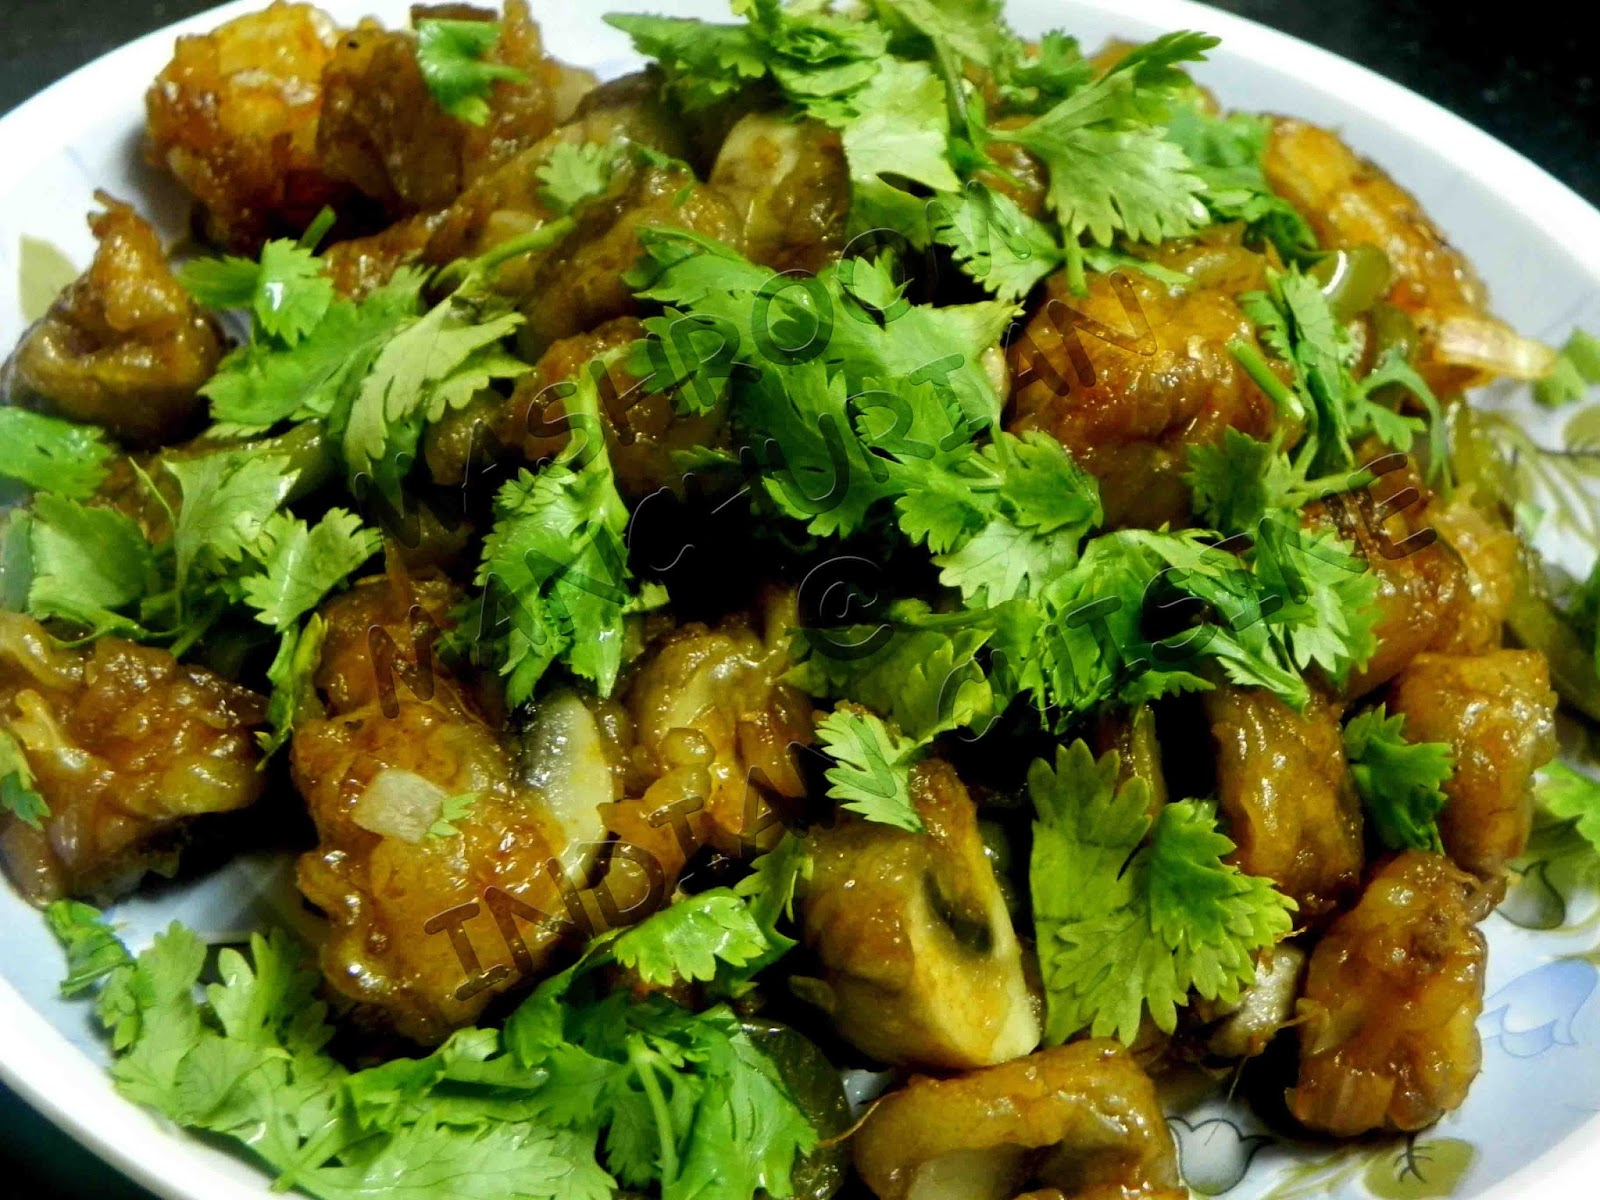 Chinese recipes restaurant style mushroom manchurian delicious as every one knows mushroom is one among very nutritious food item this delicacy of china is the tastiest mouth watering recipe one can make with forumfinder Image collections